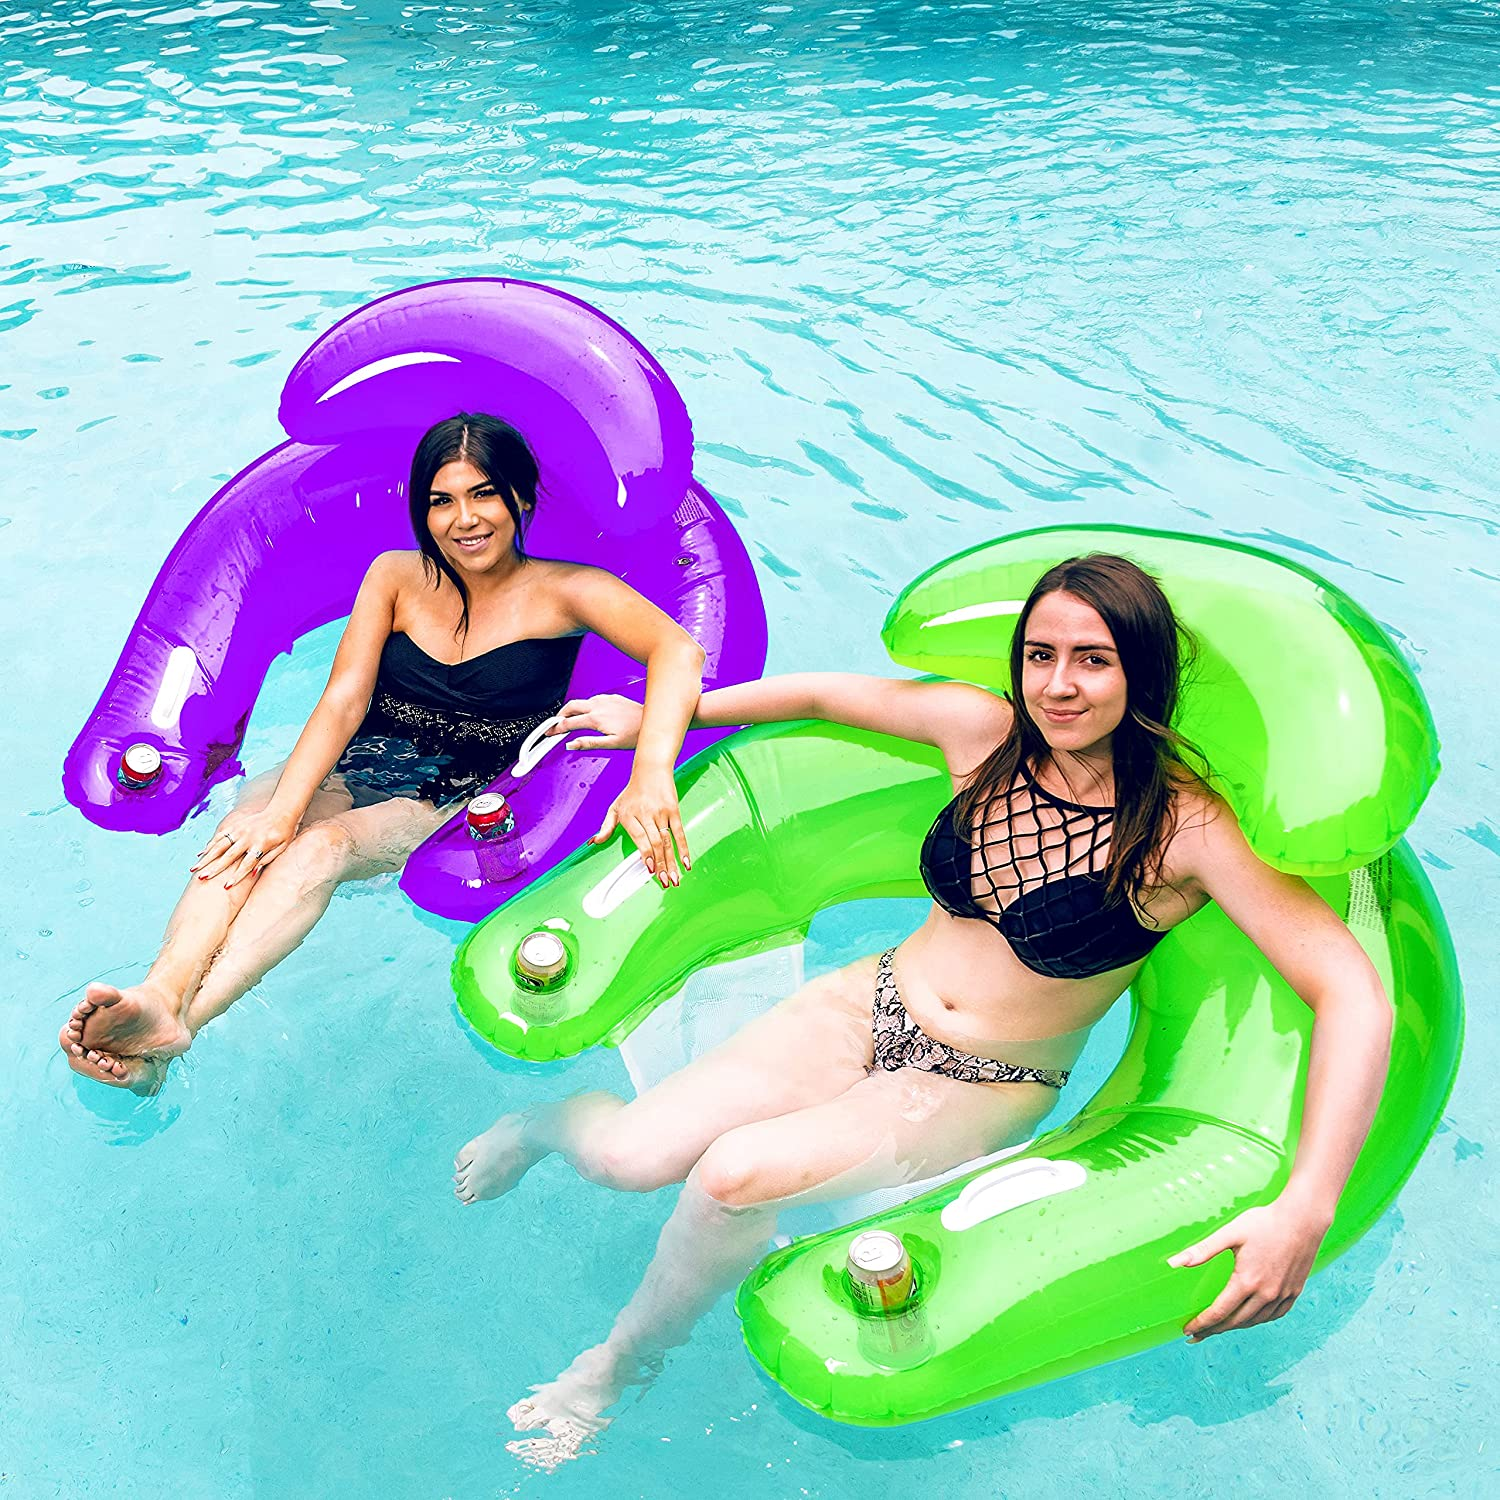 SLOOSH 2 Pack Inflatable Pool Lounger with Built-in Beverage Cup Holders, Handles and Headrest, Pool Floats and Sit N Float Inflatable Pool Chair for Adults Outdoor Beach Pool Party(Green, Purple)